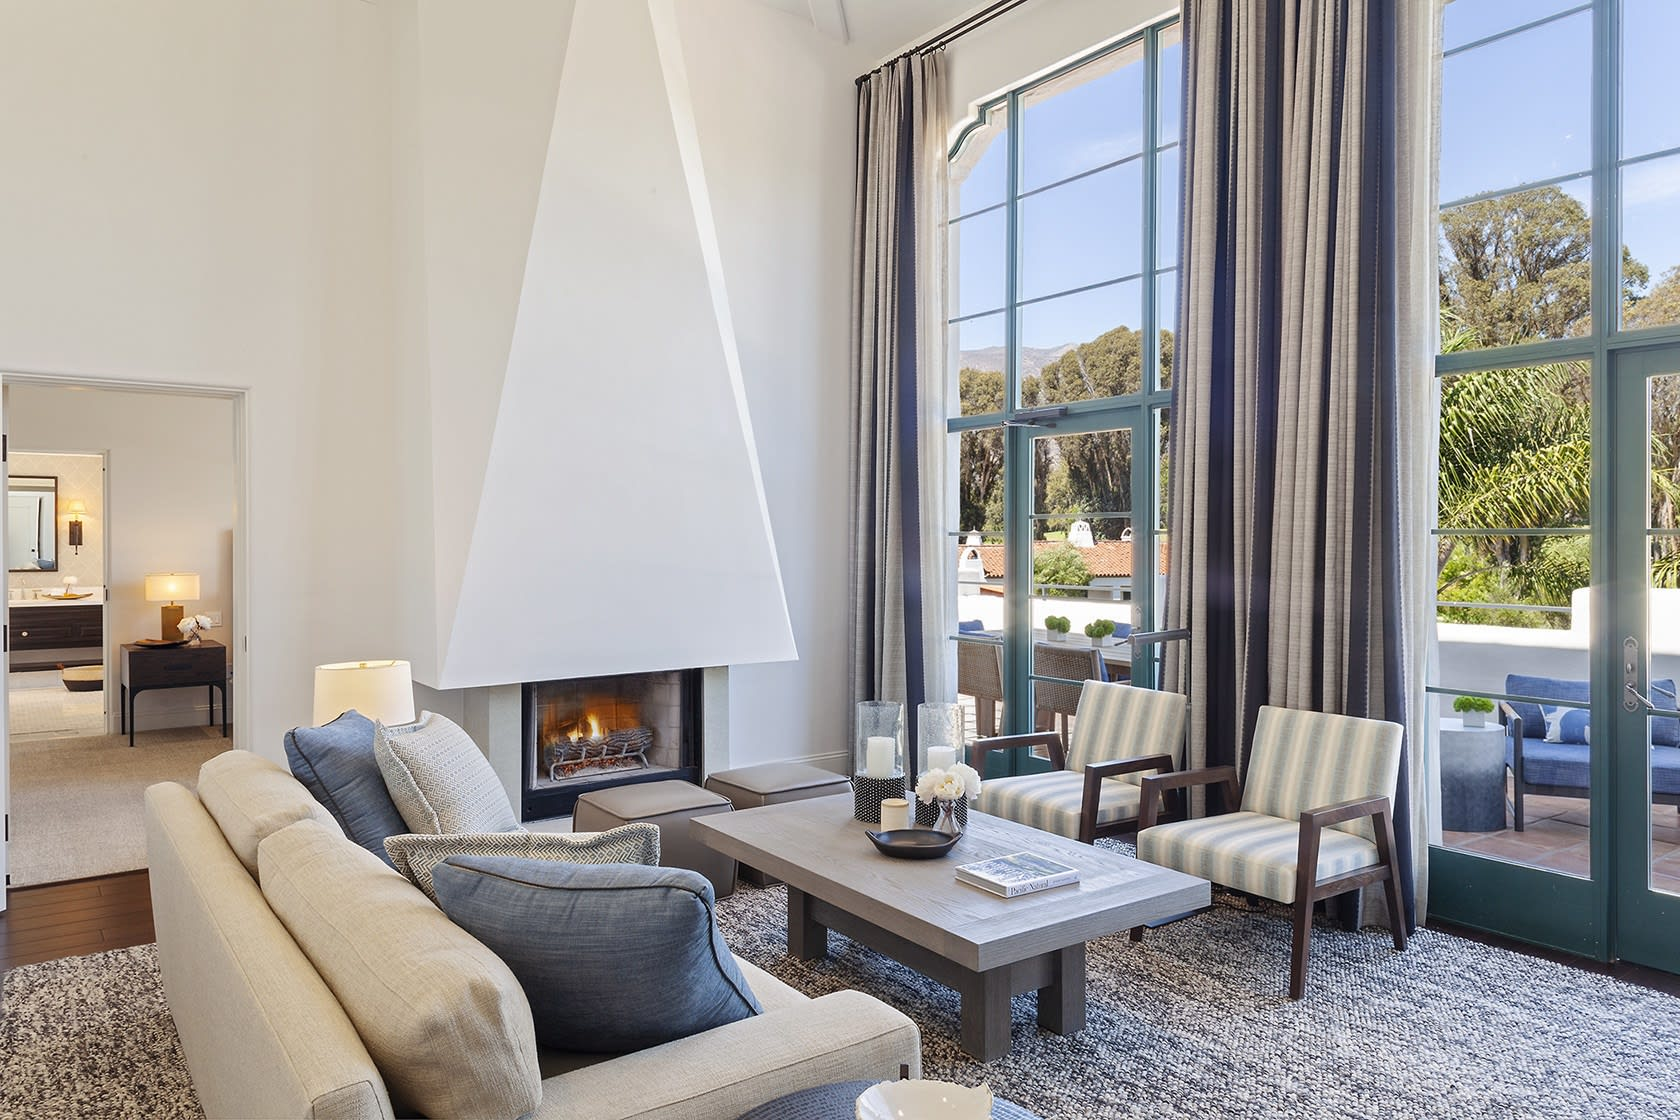 Ojai Valley Inn re-opens, debuting $5-million dollar renovation of spa Ojai and luxury spa penthouse suites